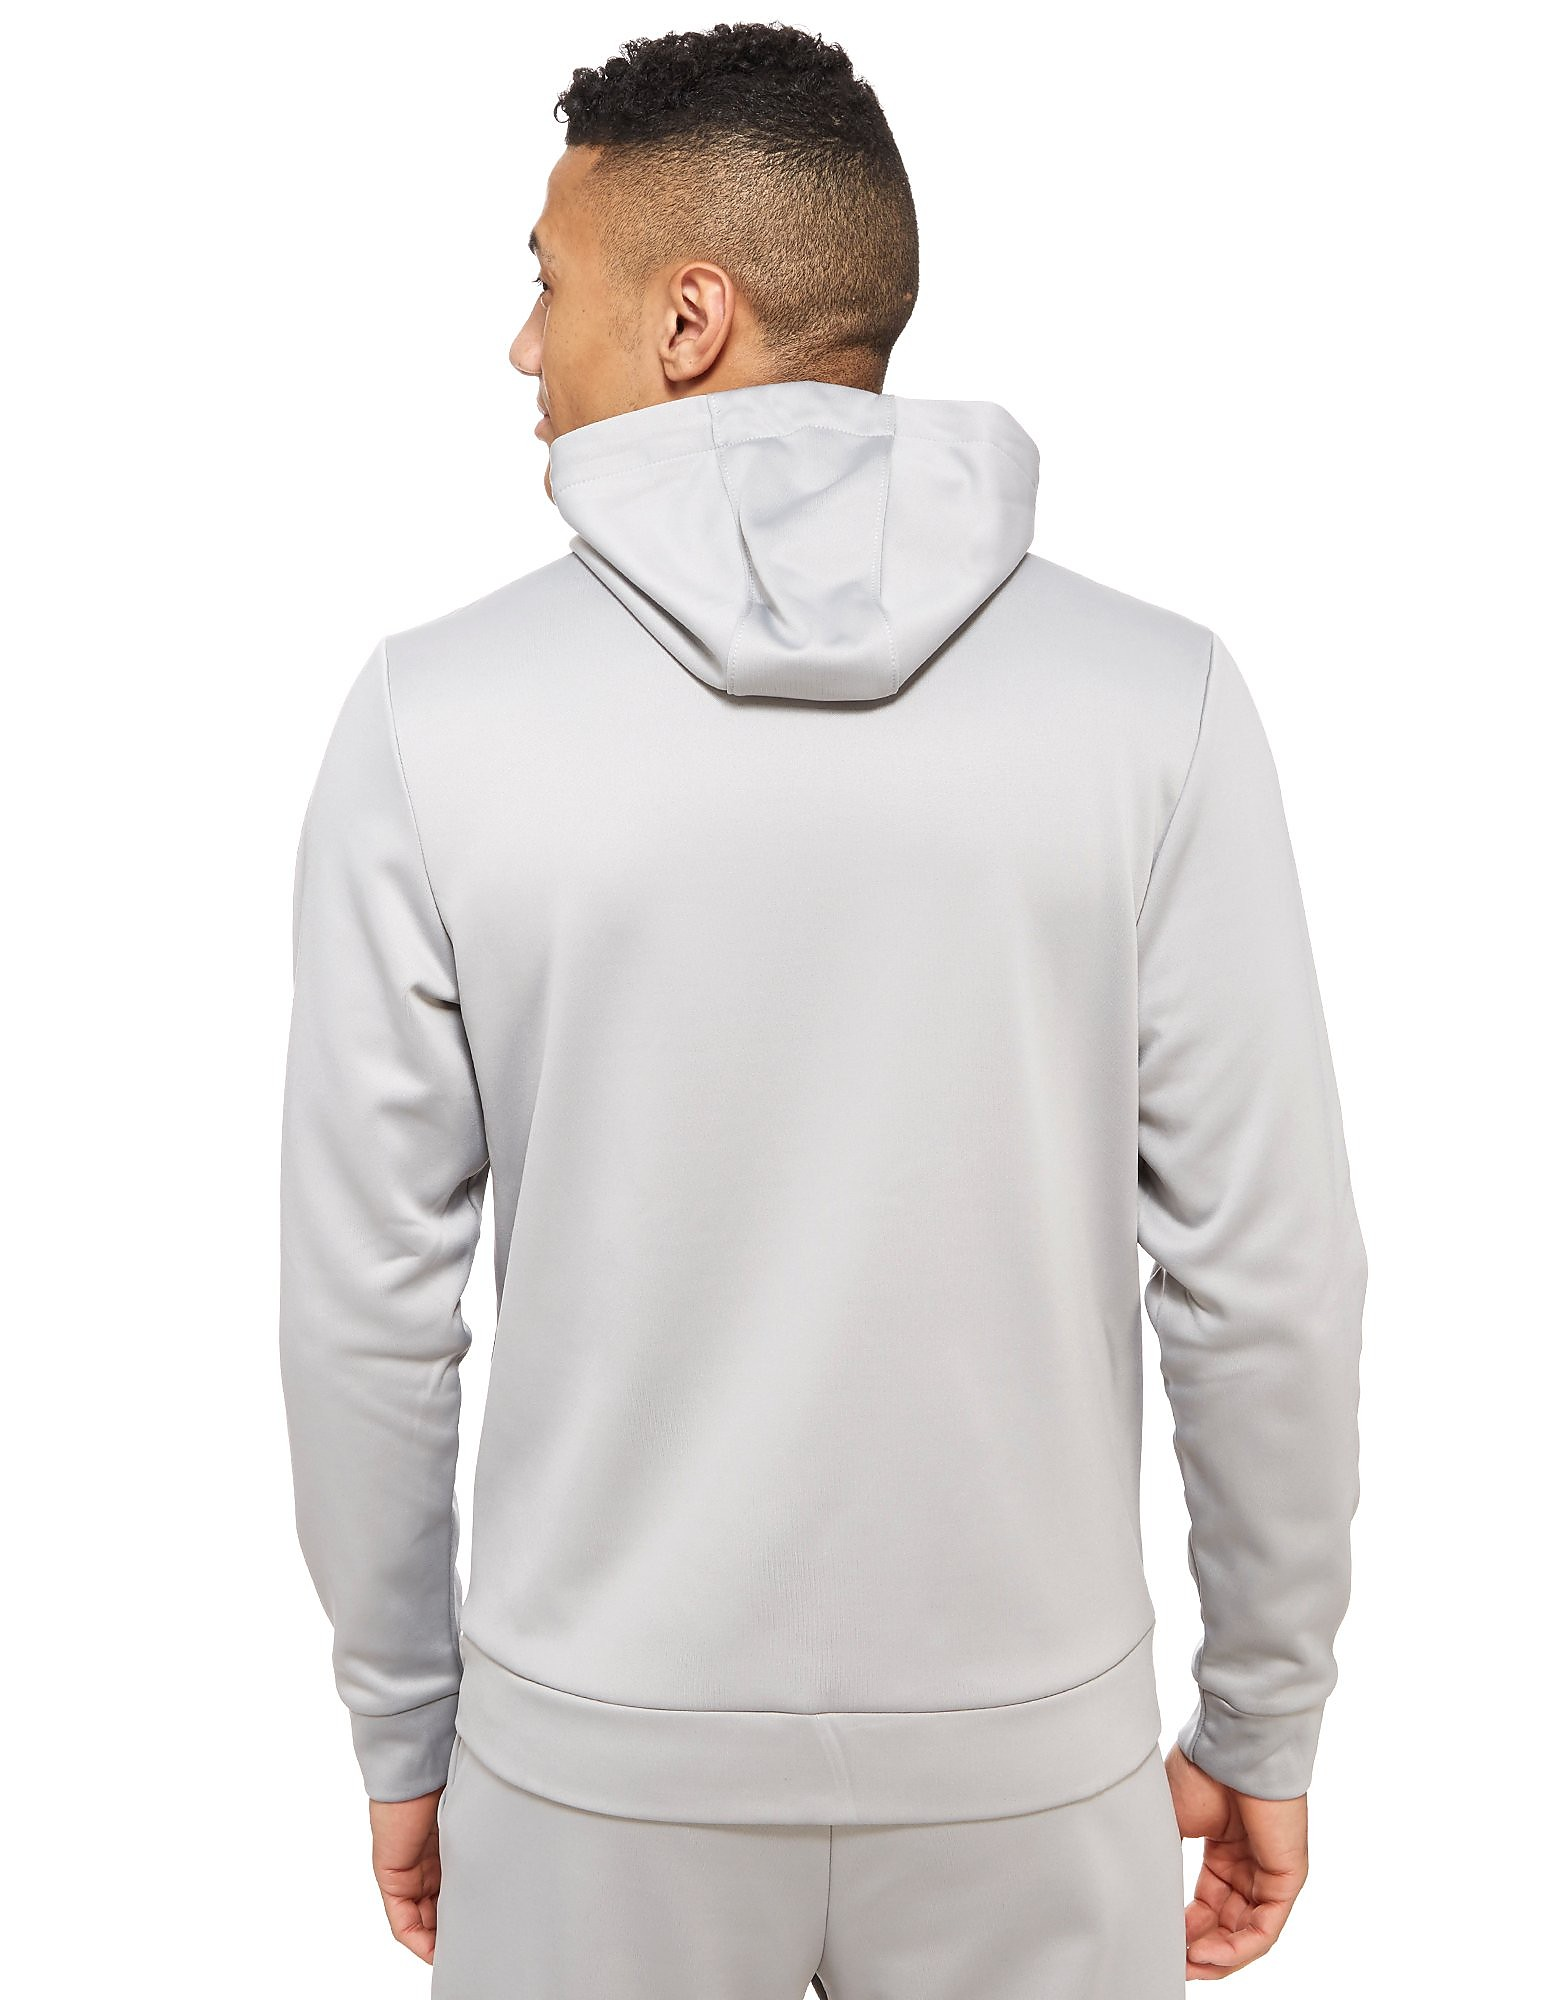 Jordan Therma 23 Protect Full Zip Hoody